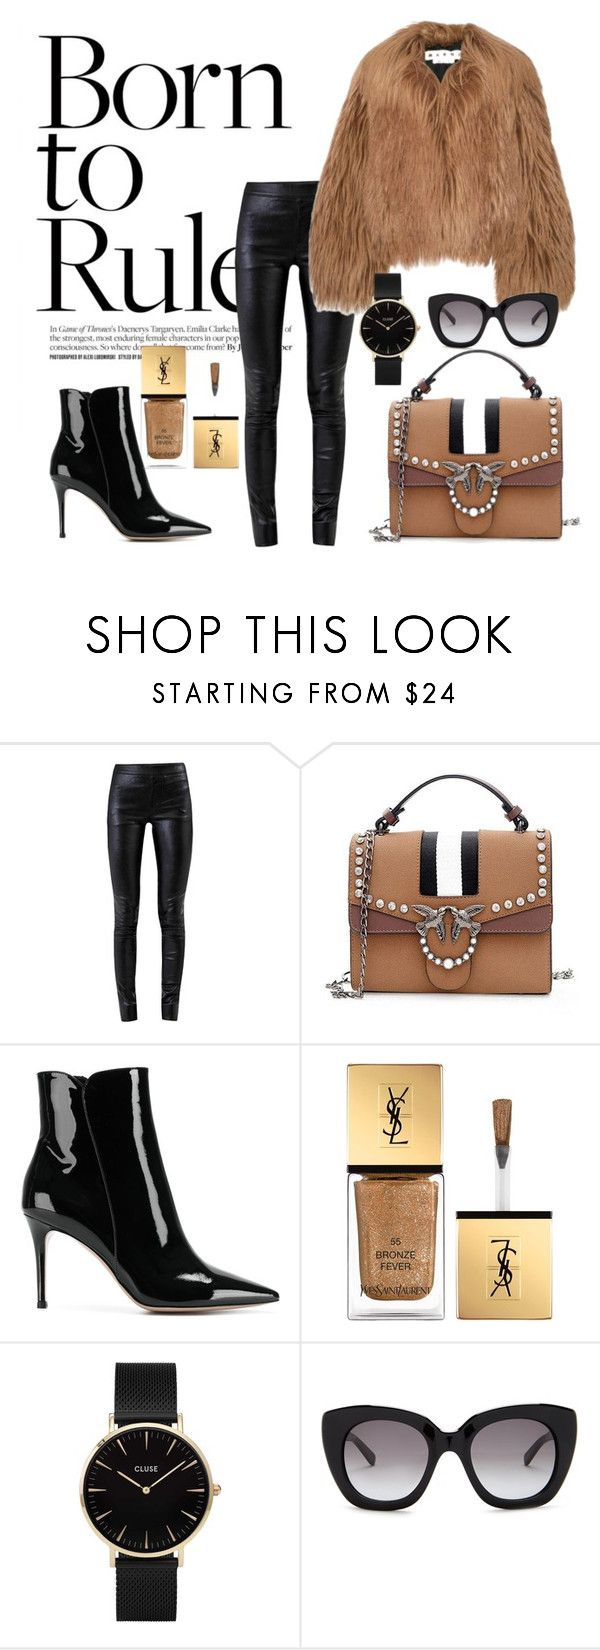 """""""Born to Rule"""" by elinacee on Polyvore featuring Helmut Lang, Marni, Gianvito Rossi, Yves Saint Laurent, CLUSE and Kate Spade"""